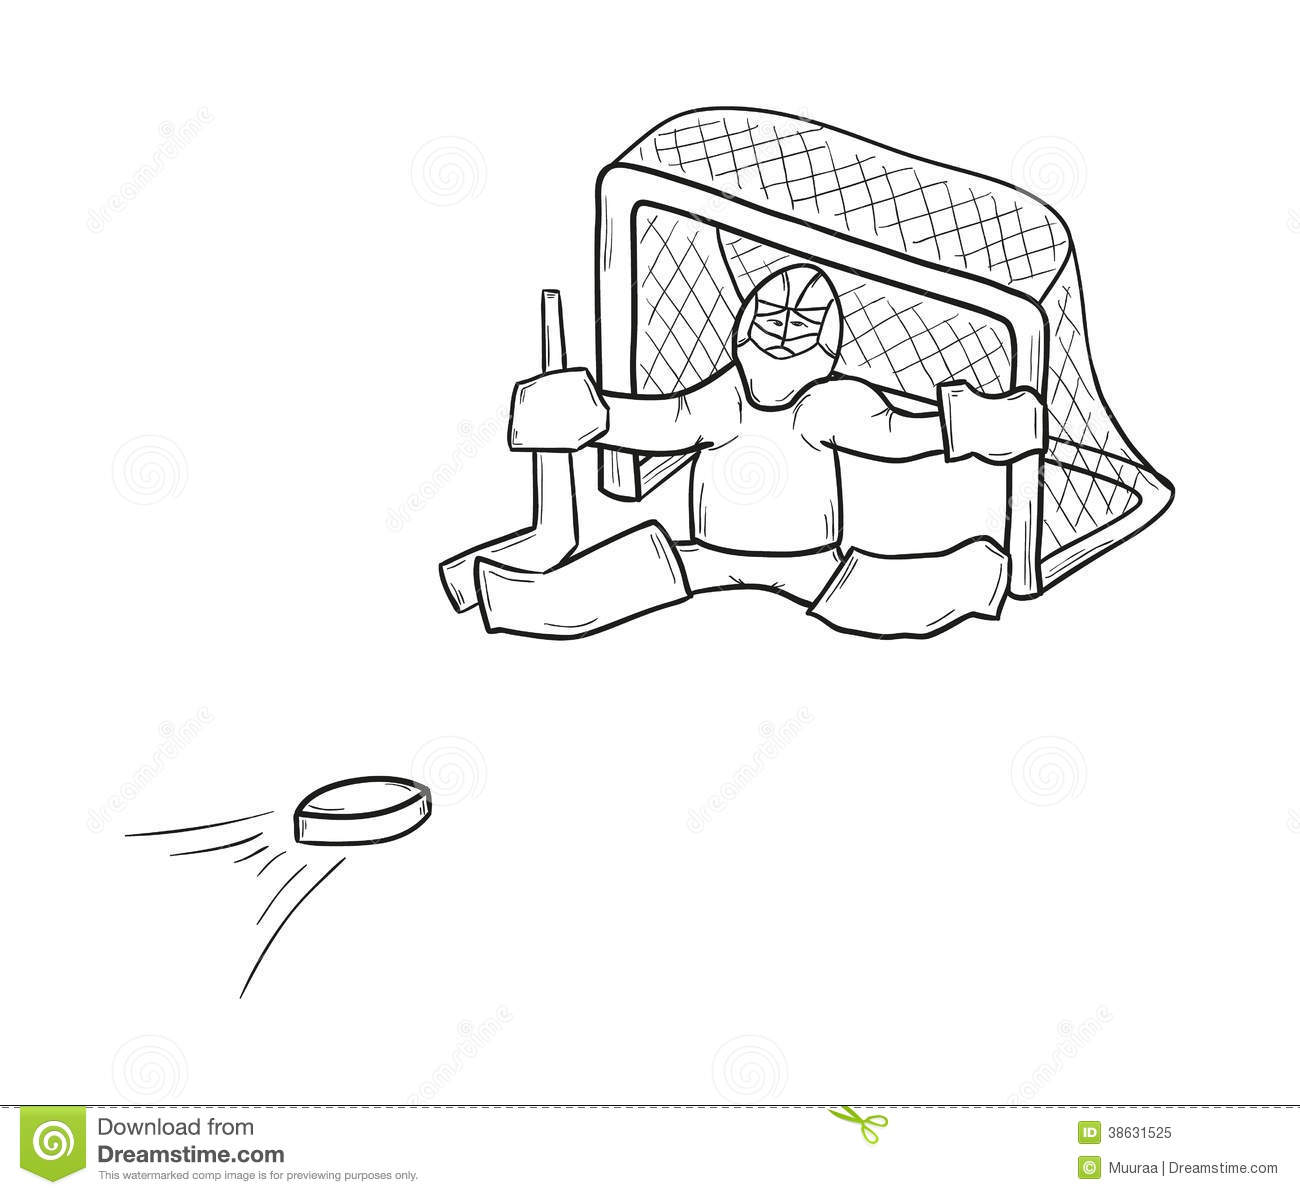 Sketch Of The Goalkeeper Royalty Free Stock Photo